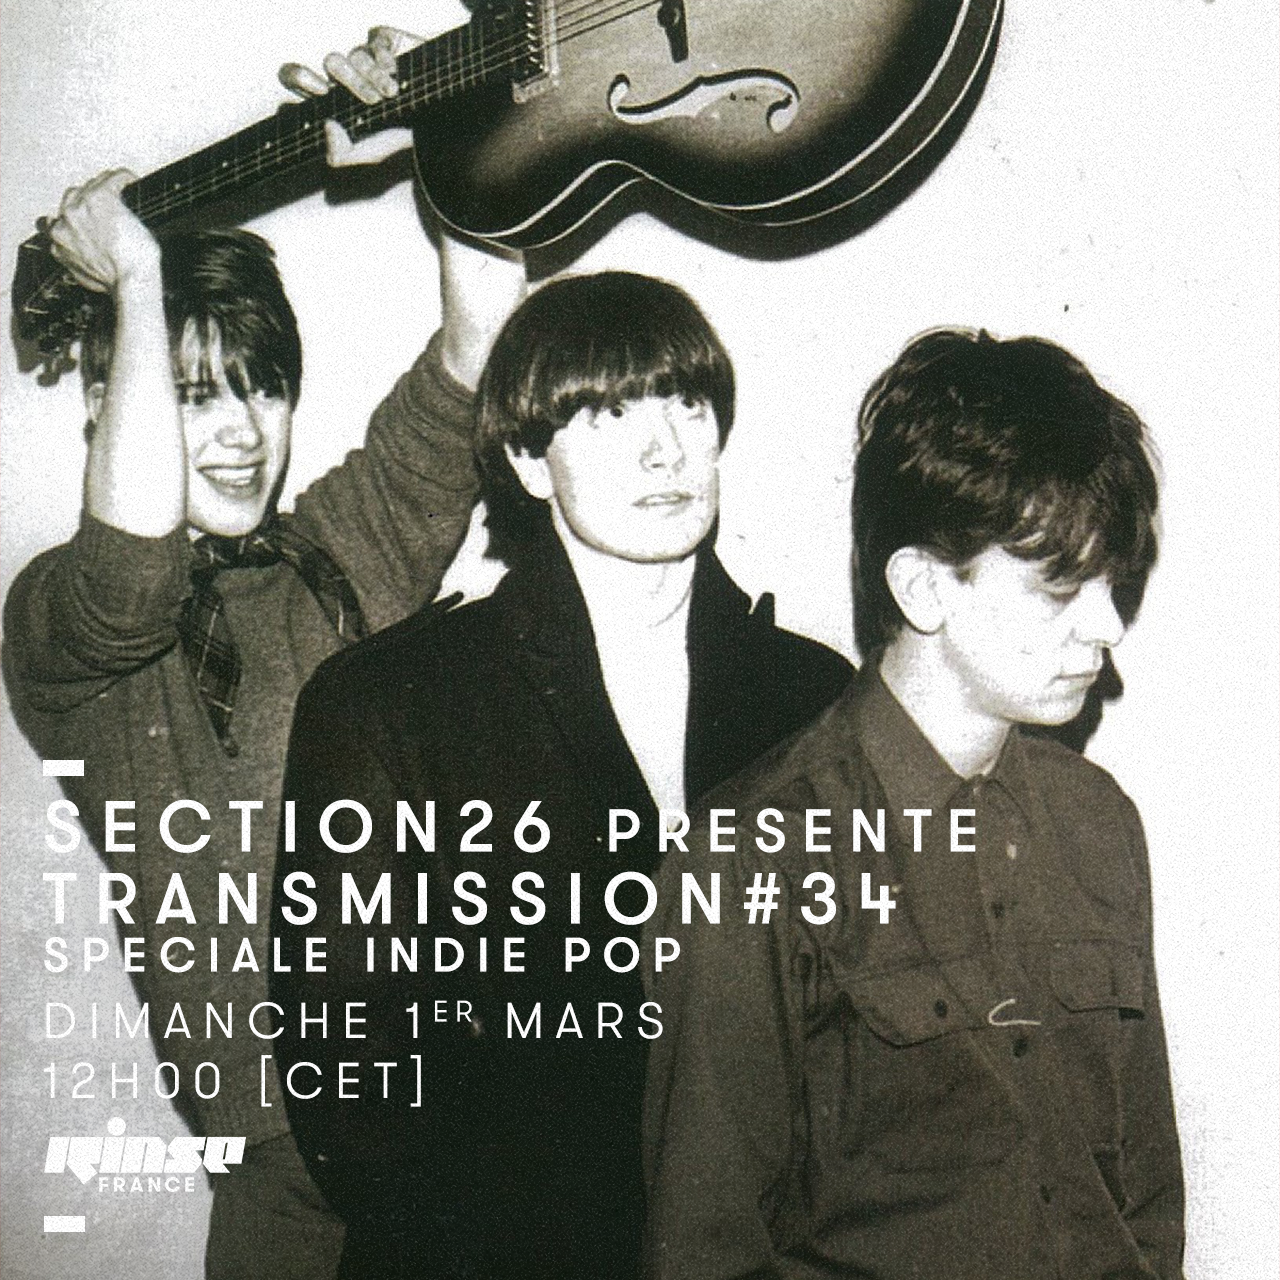 section26 Rinse Transmission spéciale Indie Pop